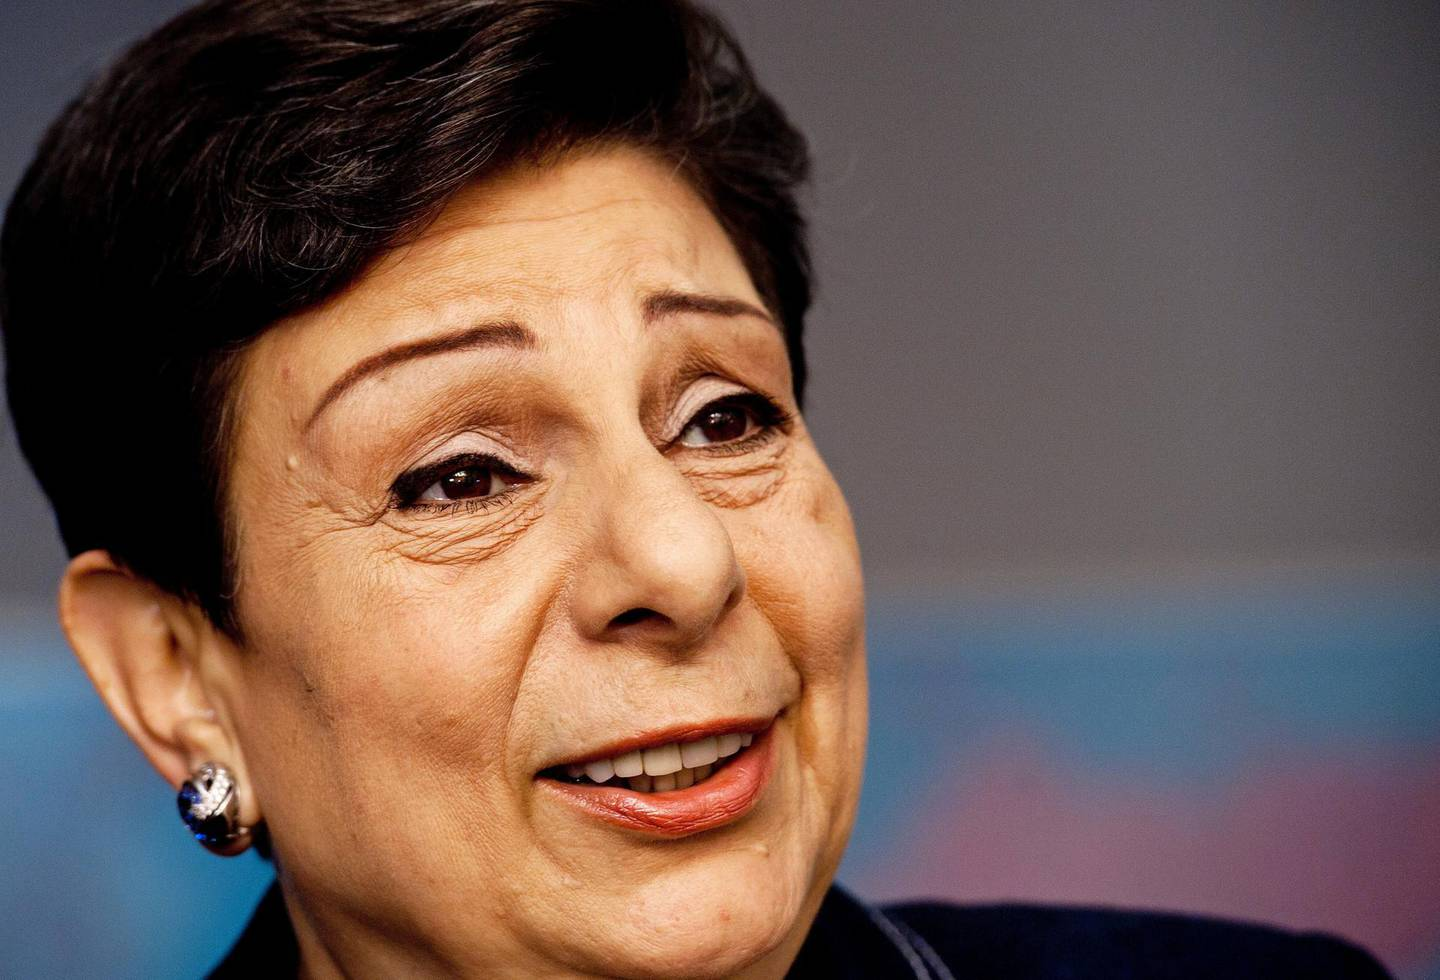 Senior Palestinian official Dr. Hanan Ashrawi, member of the Executive Committee of the PLO and electe Palestinian Legislative Council, is interviewed August 2, 2011 in washington, DC. Ashrawi said she tried in vain to persuade the Obama administration not to veto a Palestinian bid next month for United Nations membership for a state on the lines that existed before the 1967 war.    AFP Photo/Paul J. Richards (Photo by PAUL J. RICHARDS / AFP)